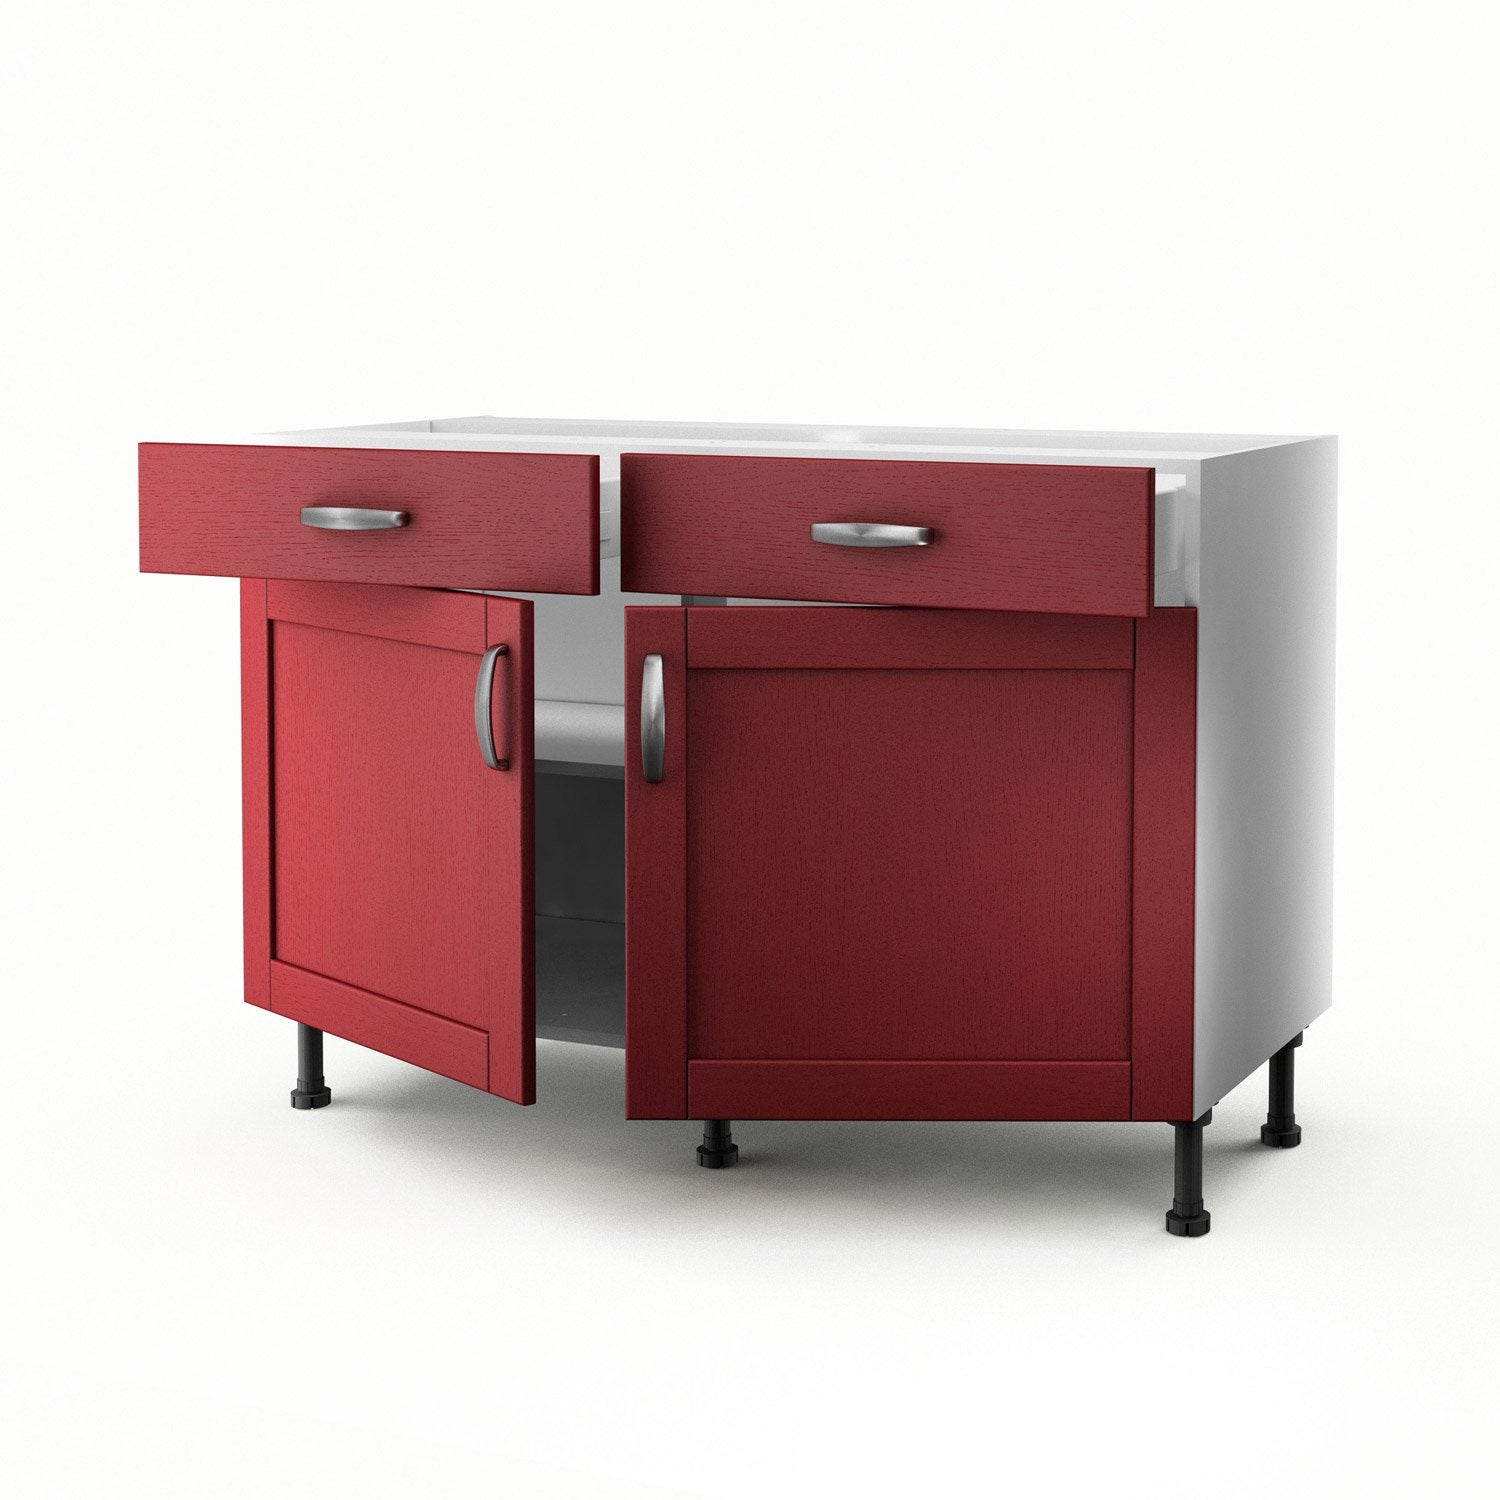 Meuble de cuisine bas rouge 2 portes 2 tiroirs rubis for Portes elements cuisine leroy merlin